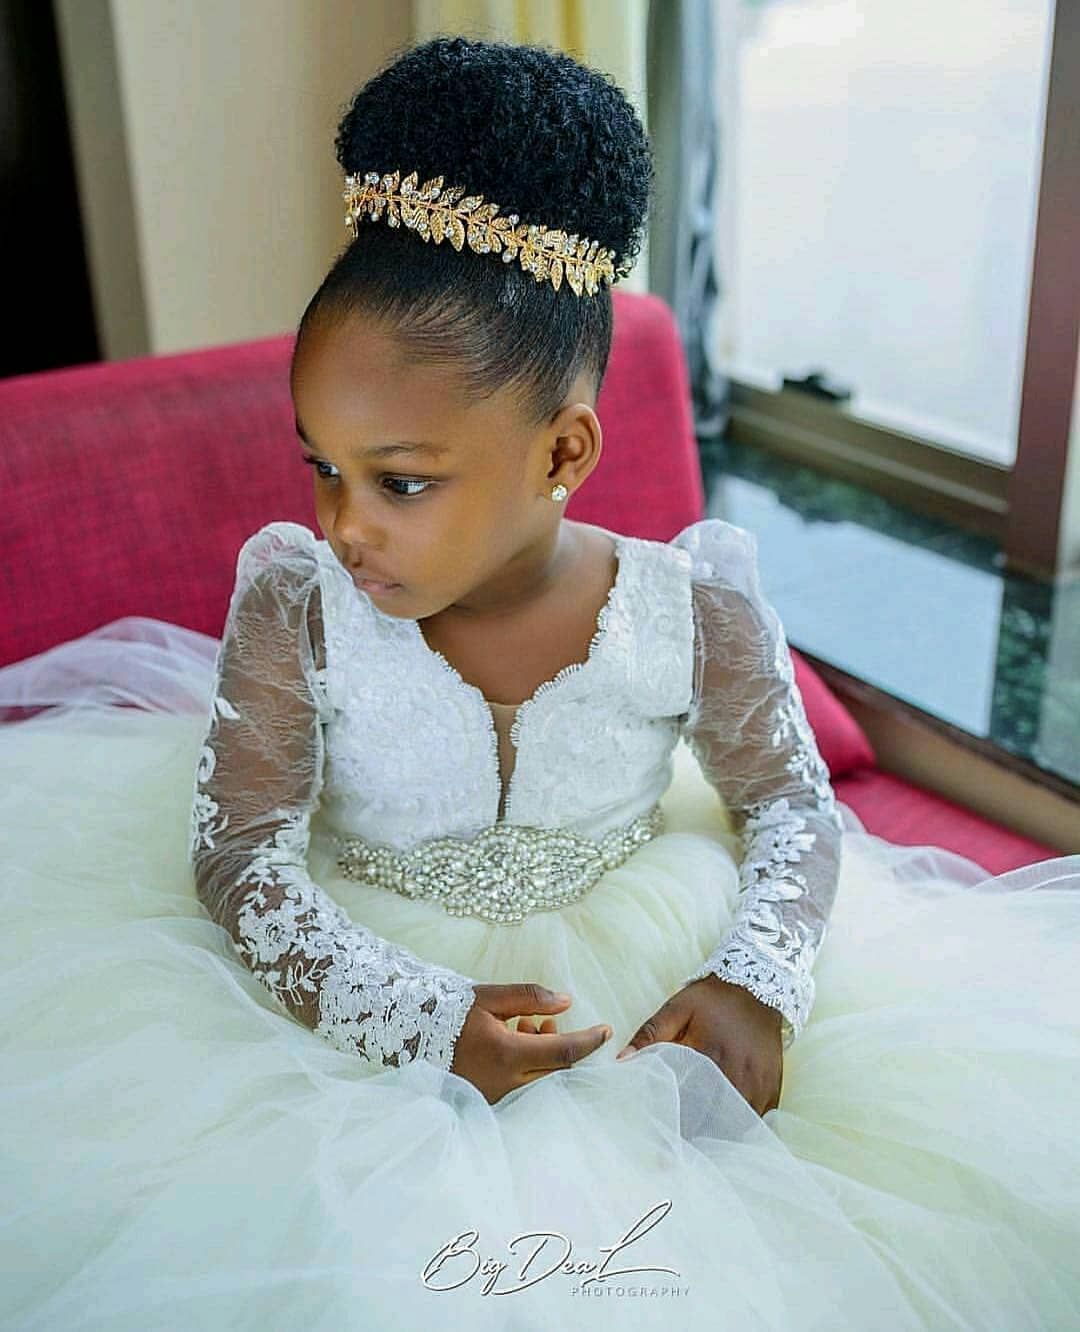 The Wedding Page On Instagram Little Bride Looking So Cute